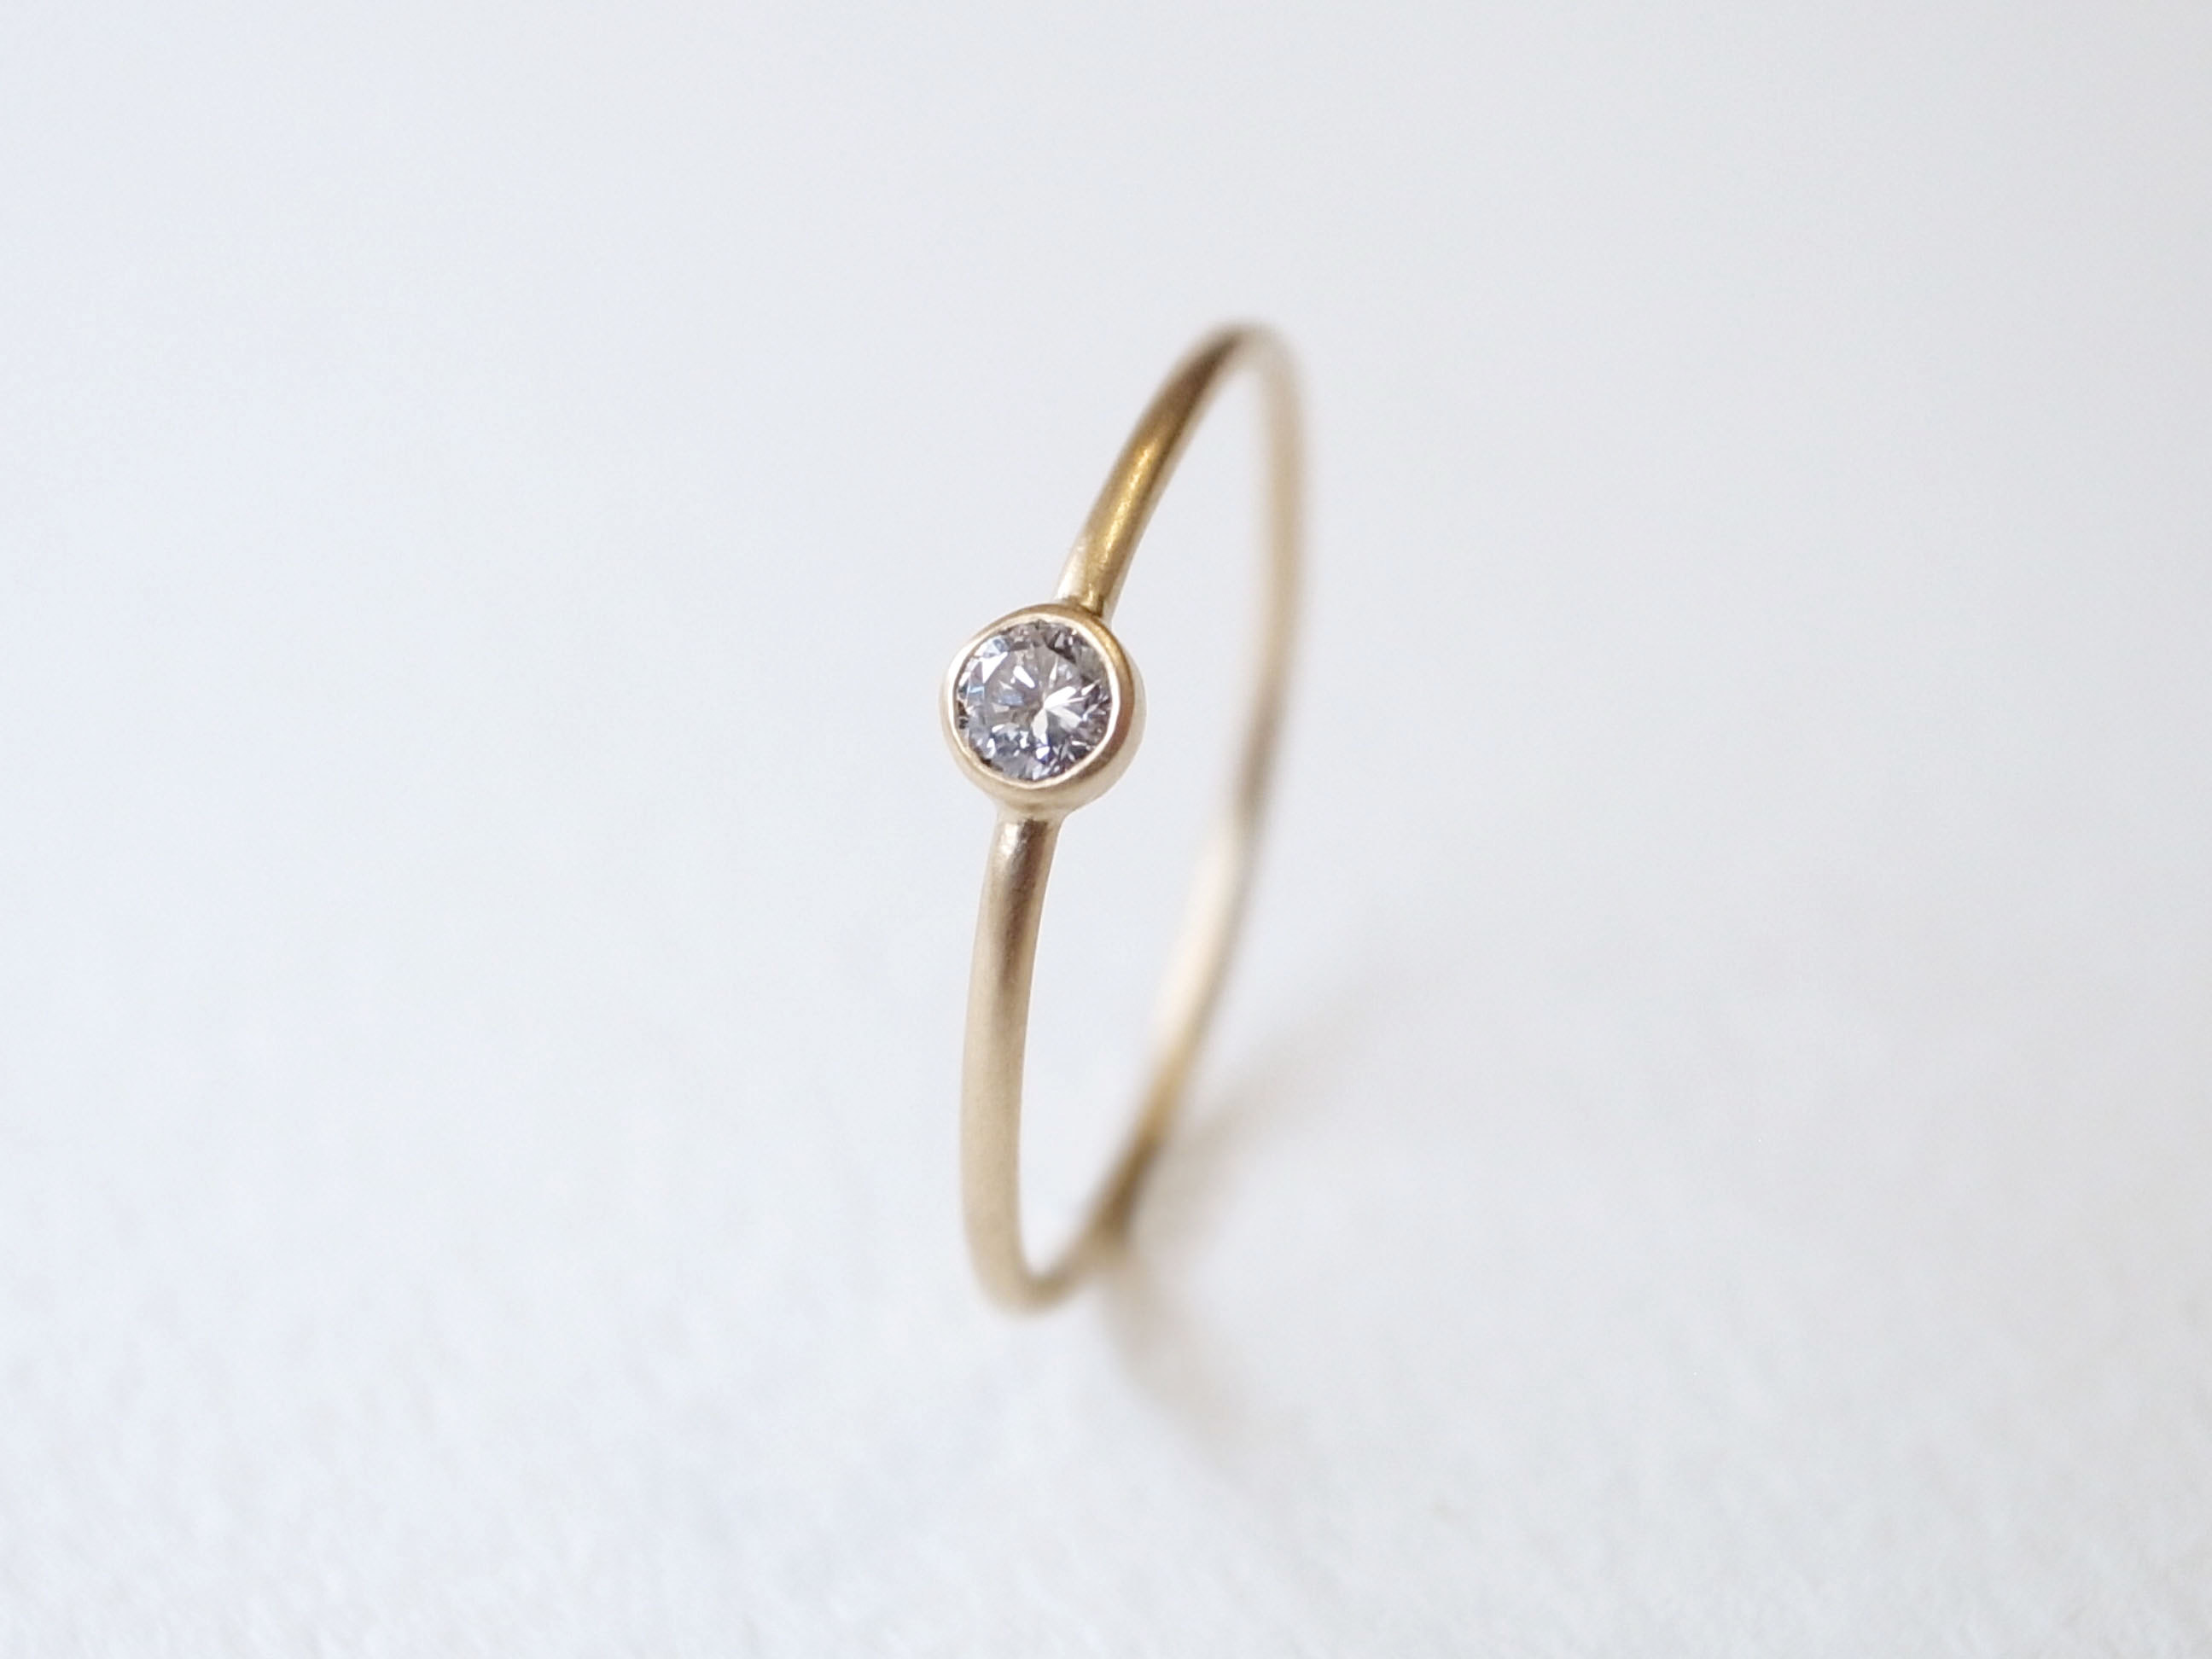 K18YG Diamond/2.5round grain ring